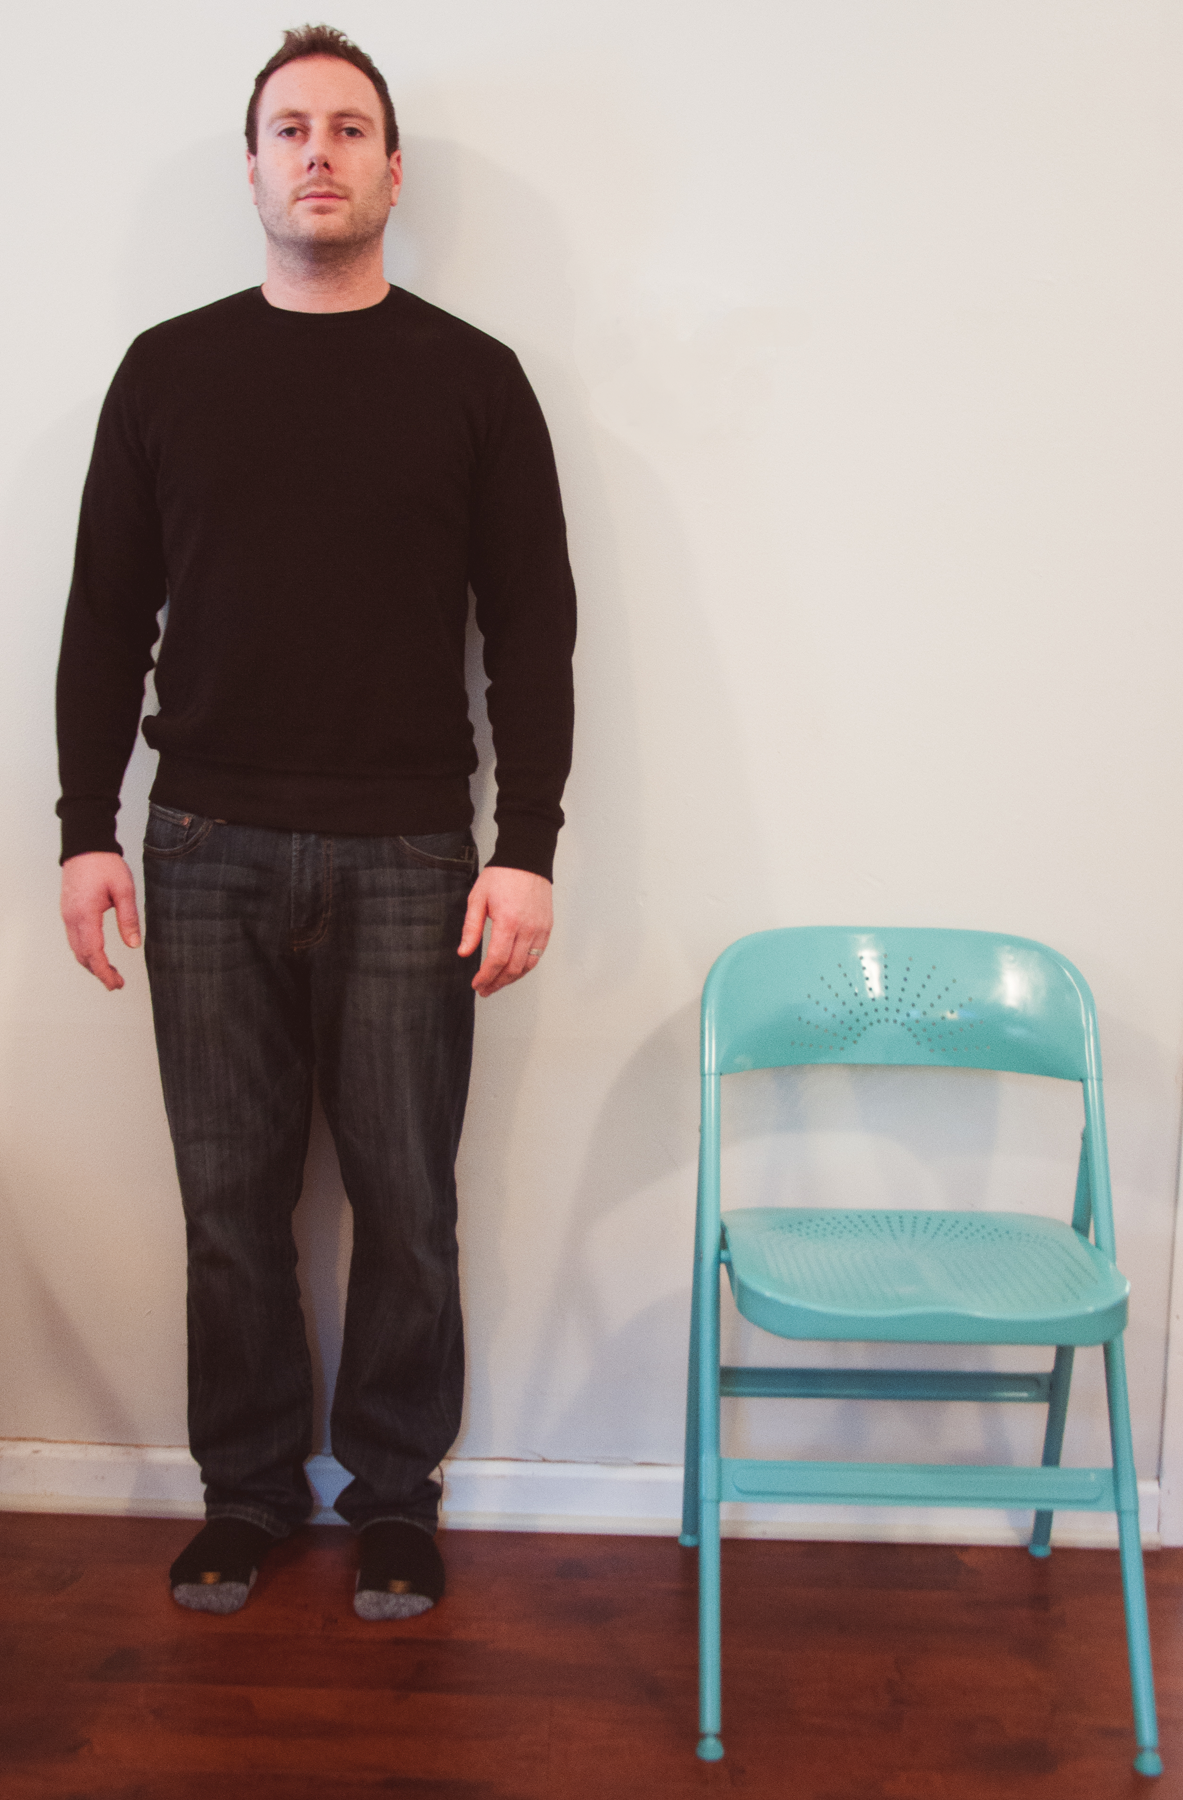 A picture of a man standing next to a folding chair. The top of the folding chair comes up to the man's hip.